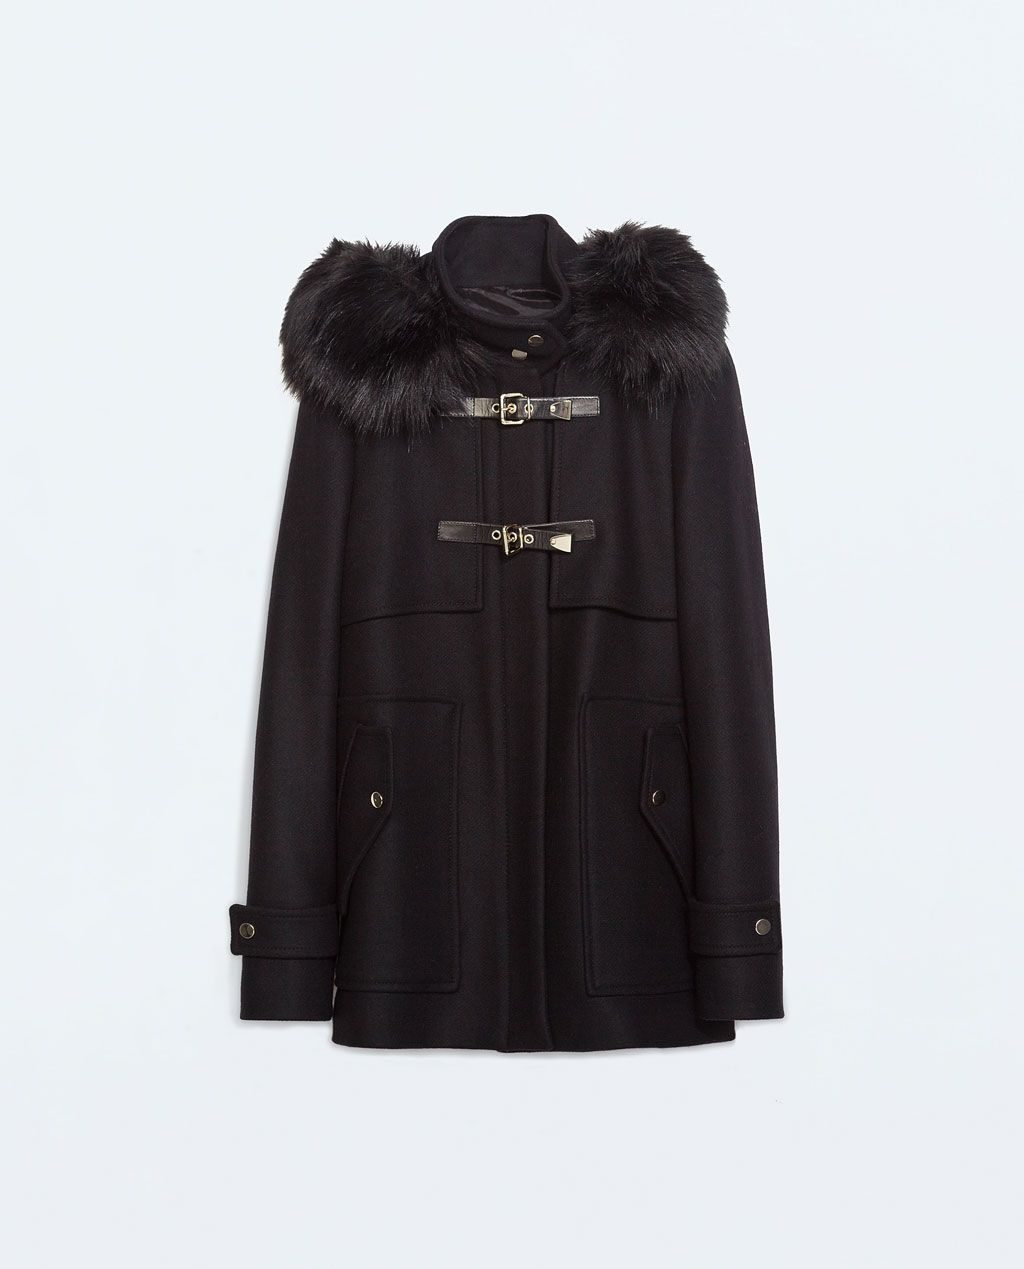 Love this coat minus the gold hardware.